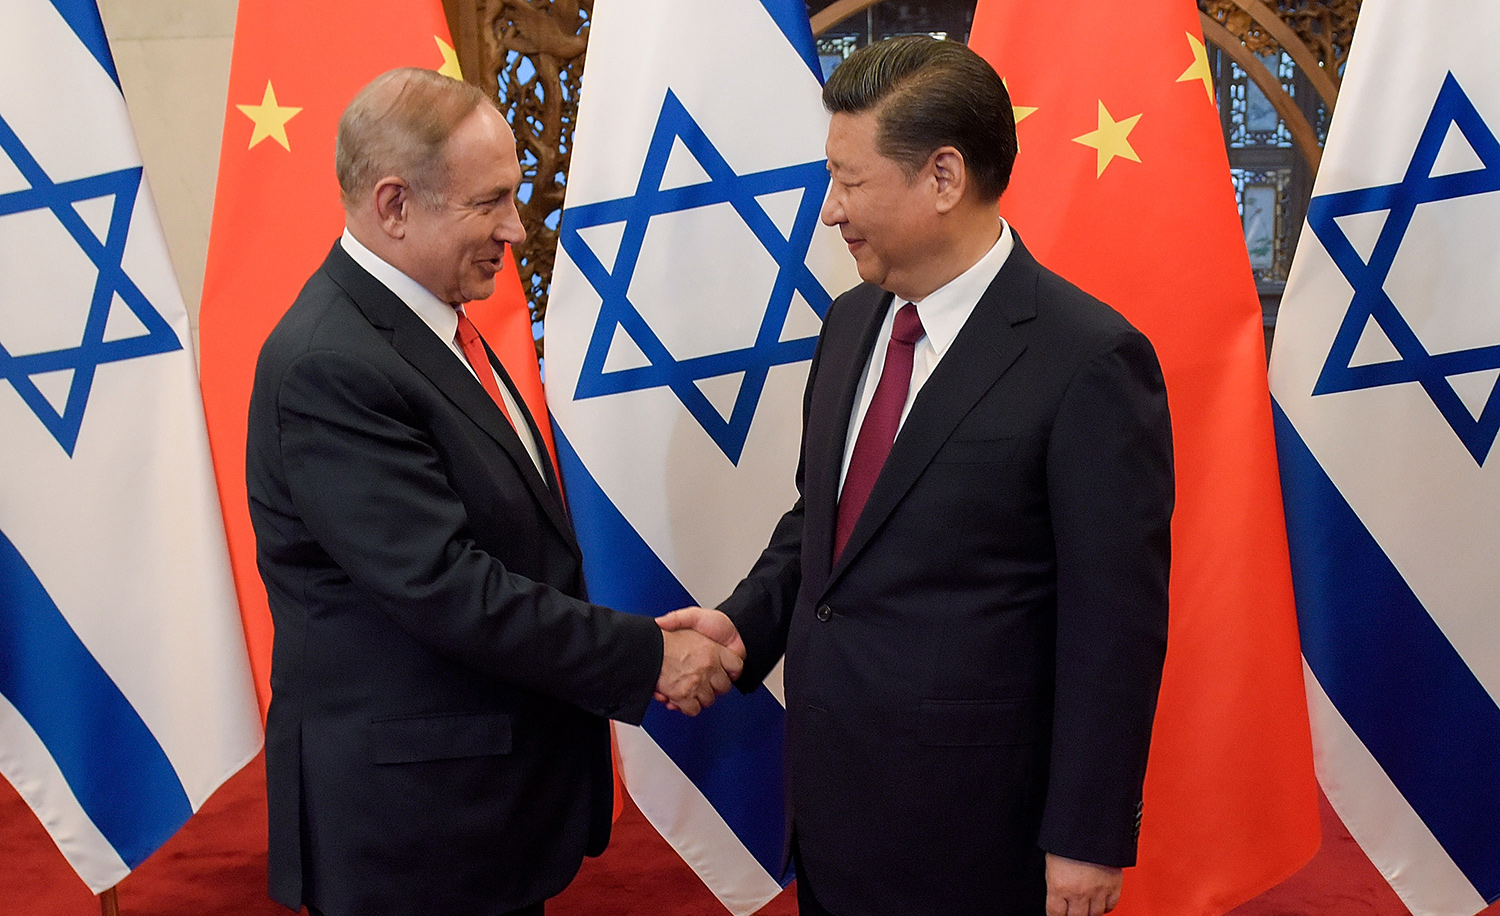 Podcast: Arthur Herman on the Impact of China on the U.S.-Israel Relationship